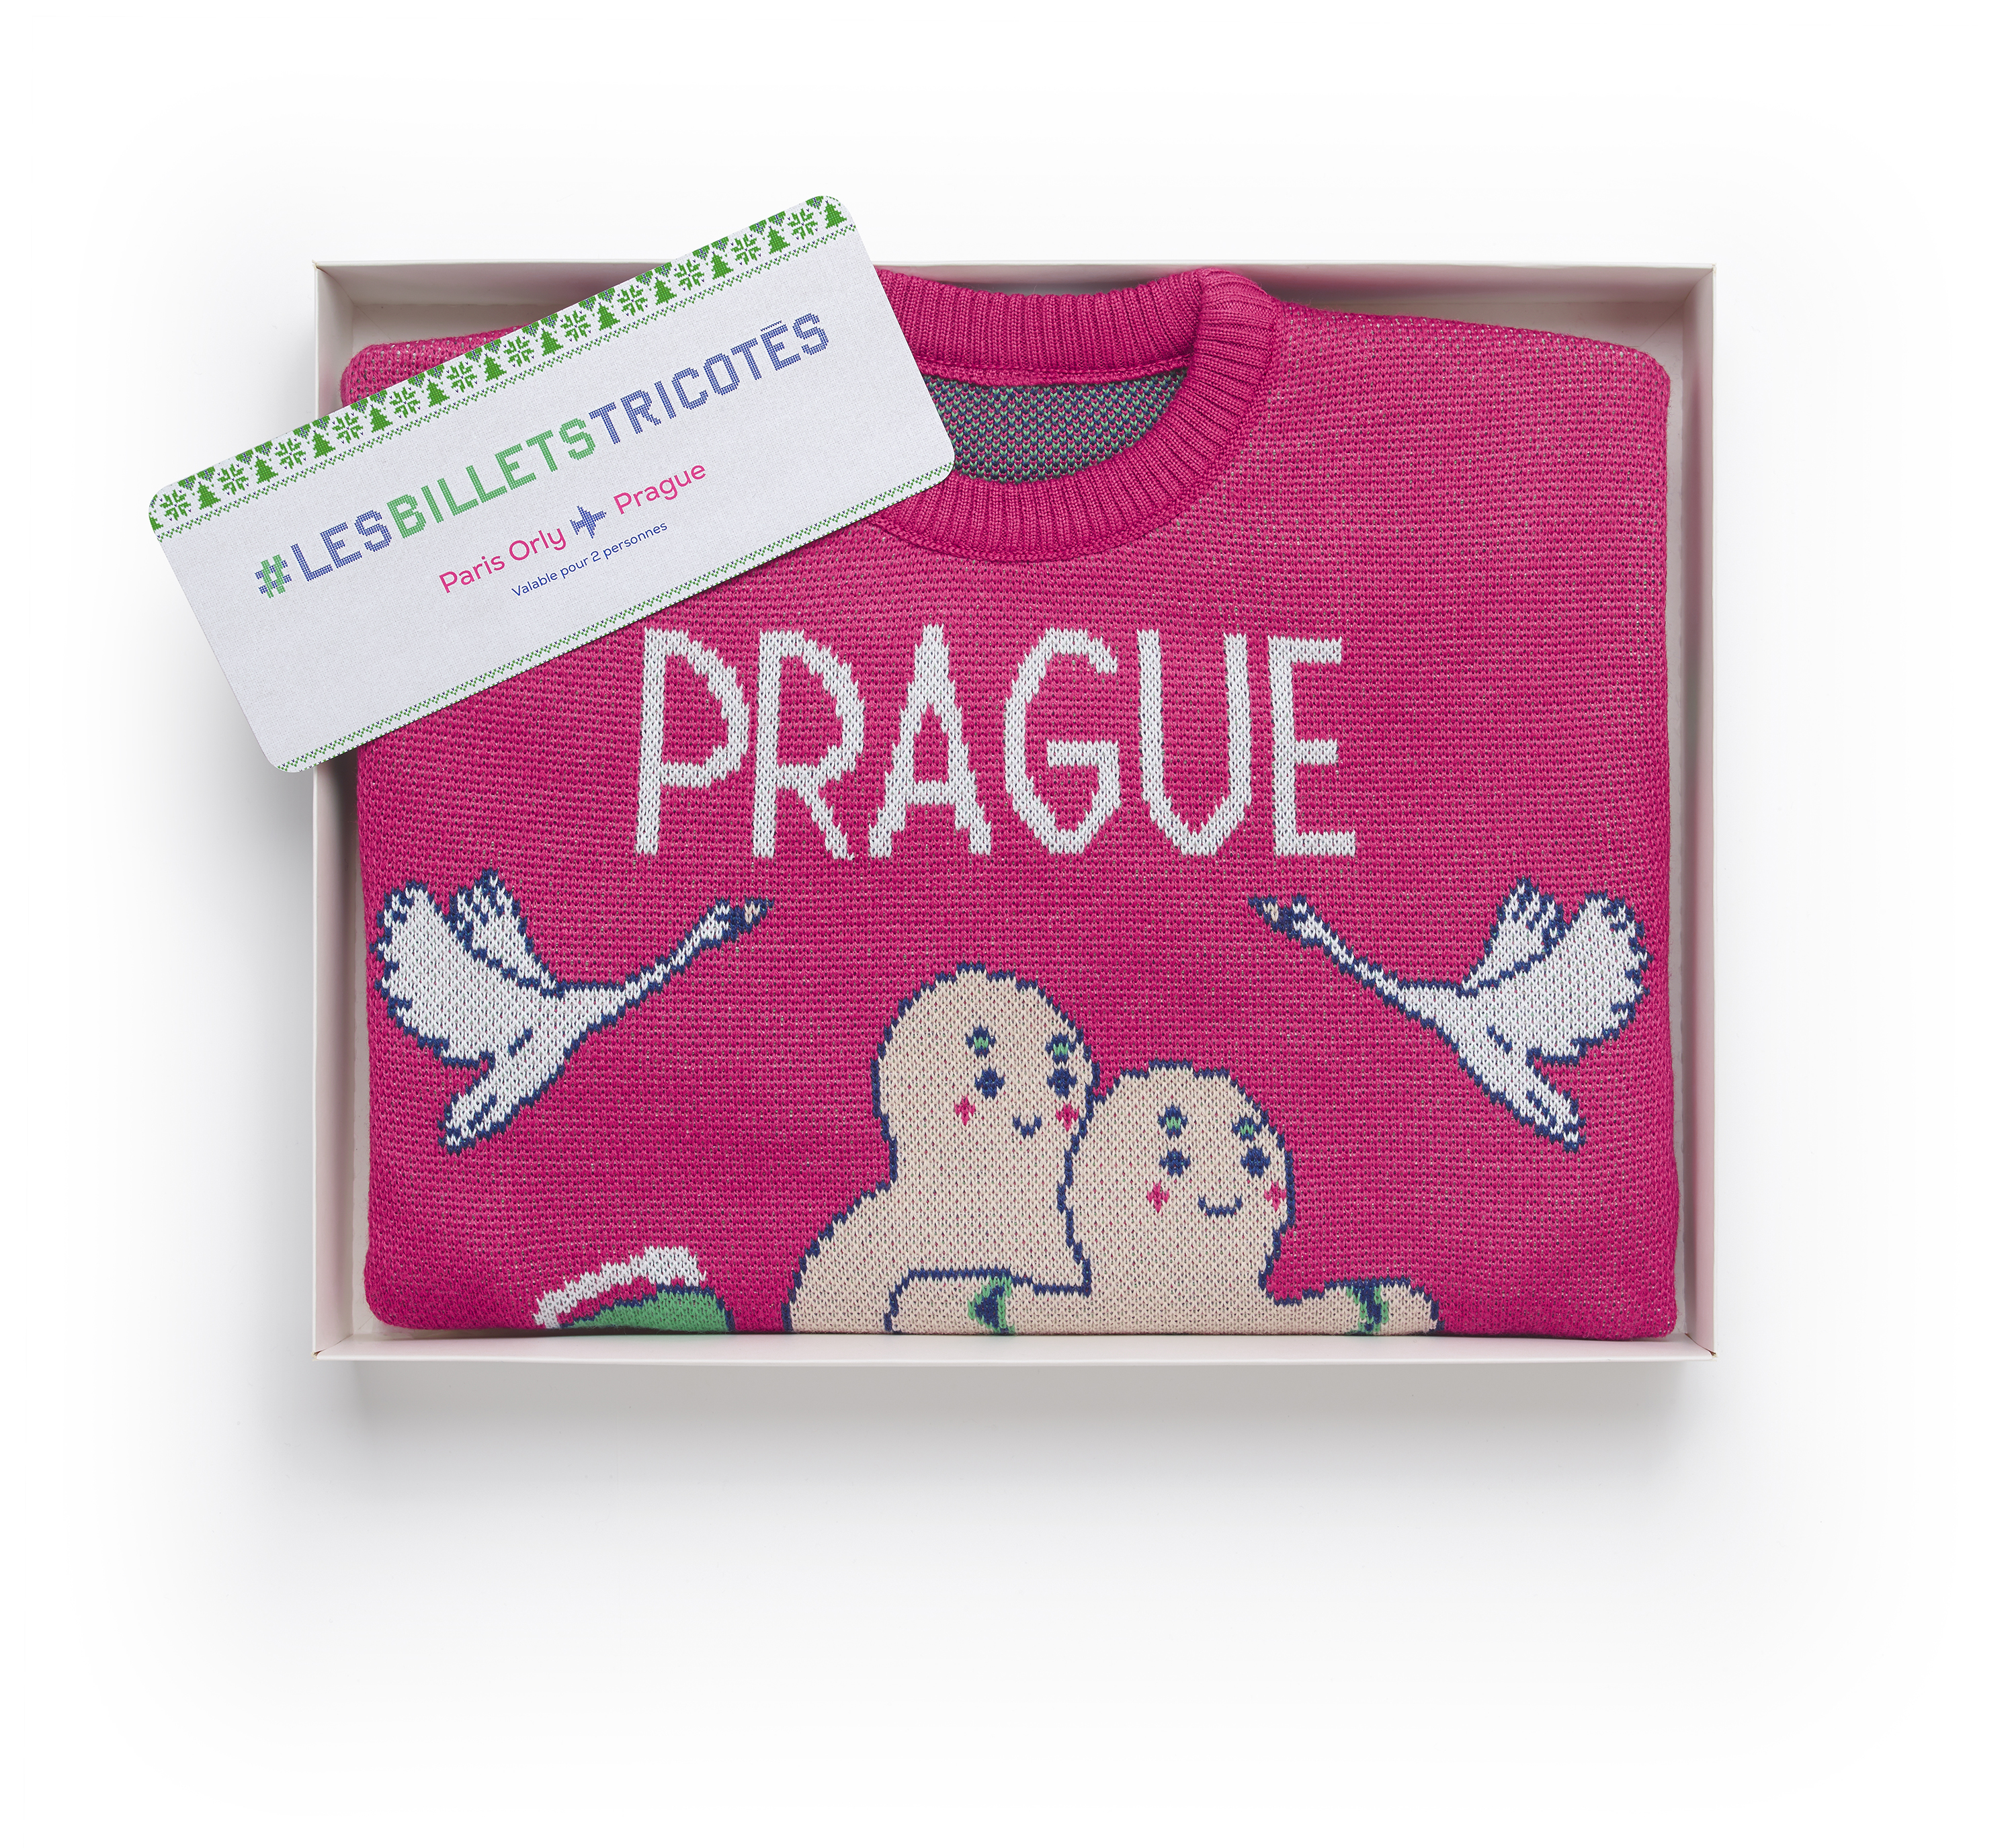 webchristmas_box_top_prague-19258.jpg